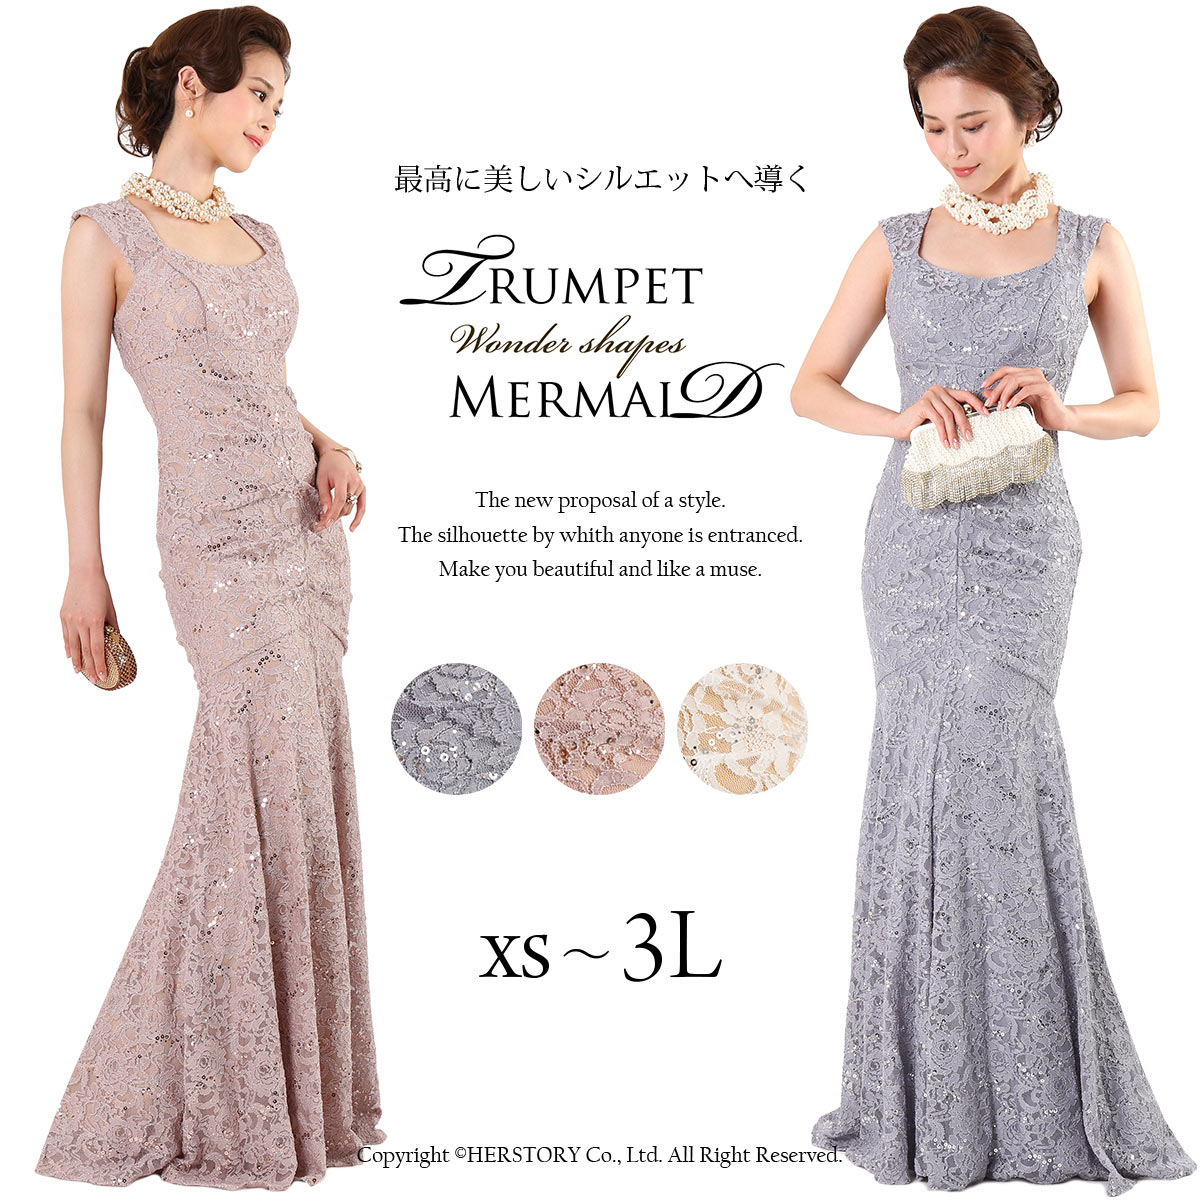 Beautiful Silhouette Trumpet Mermaid Long Dress Race Stage Concert Presentation Invite Party Four Circle Classical Music Back Profile Wedding